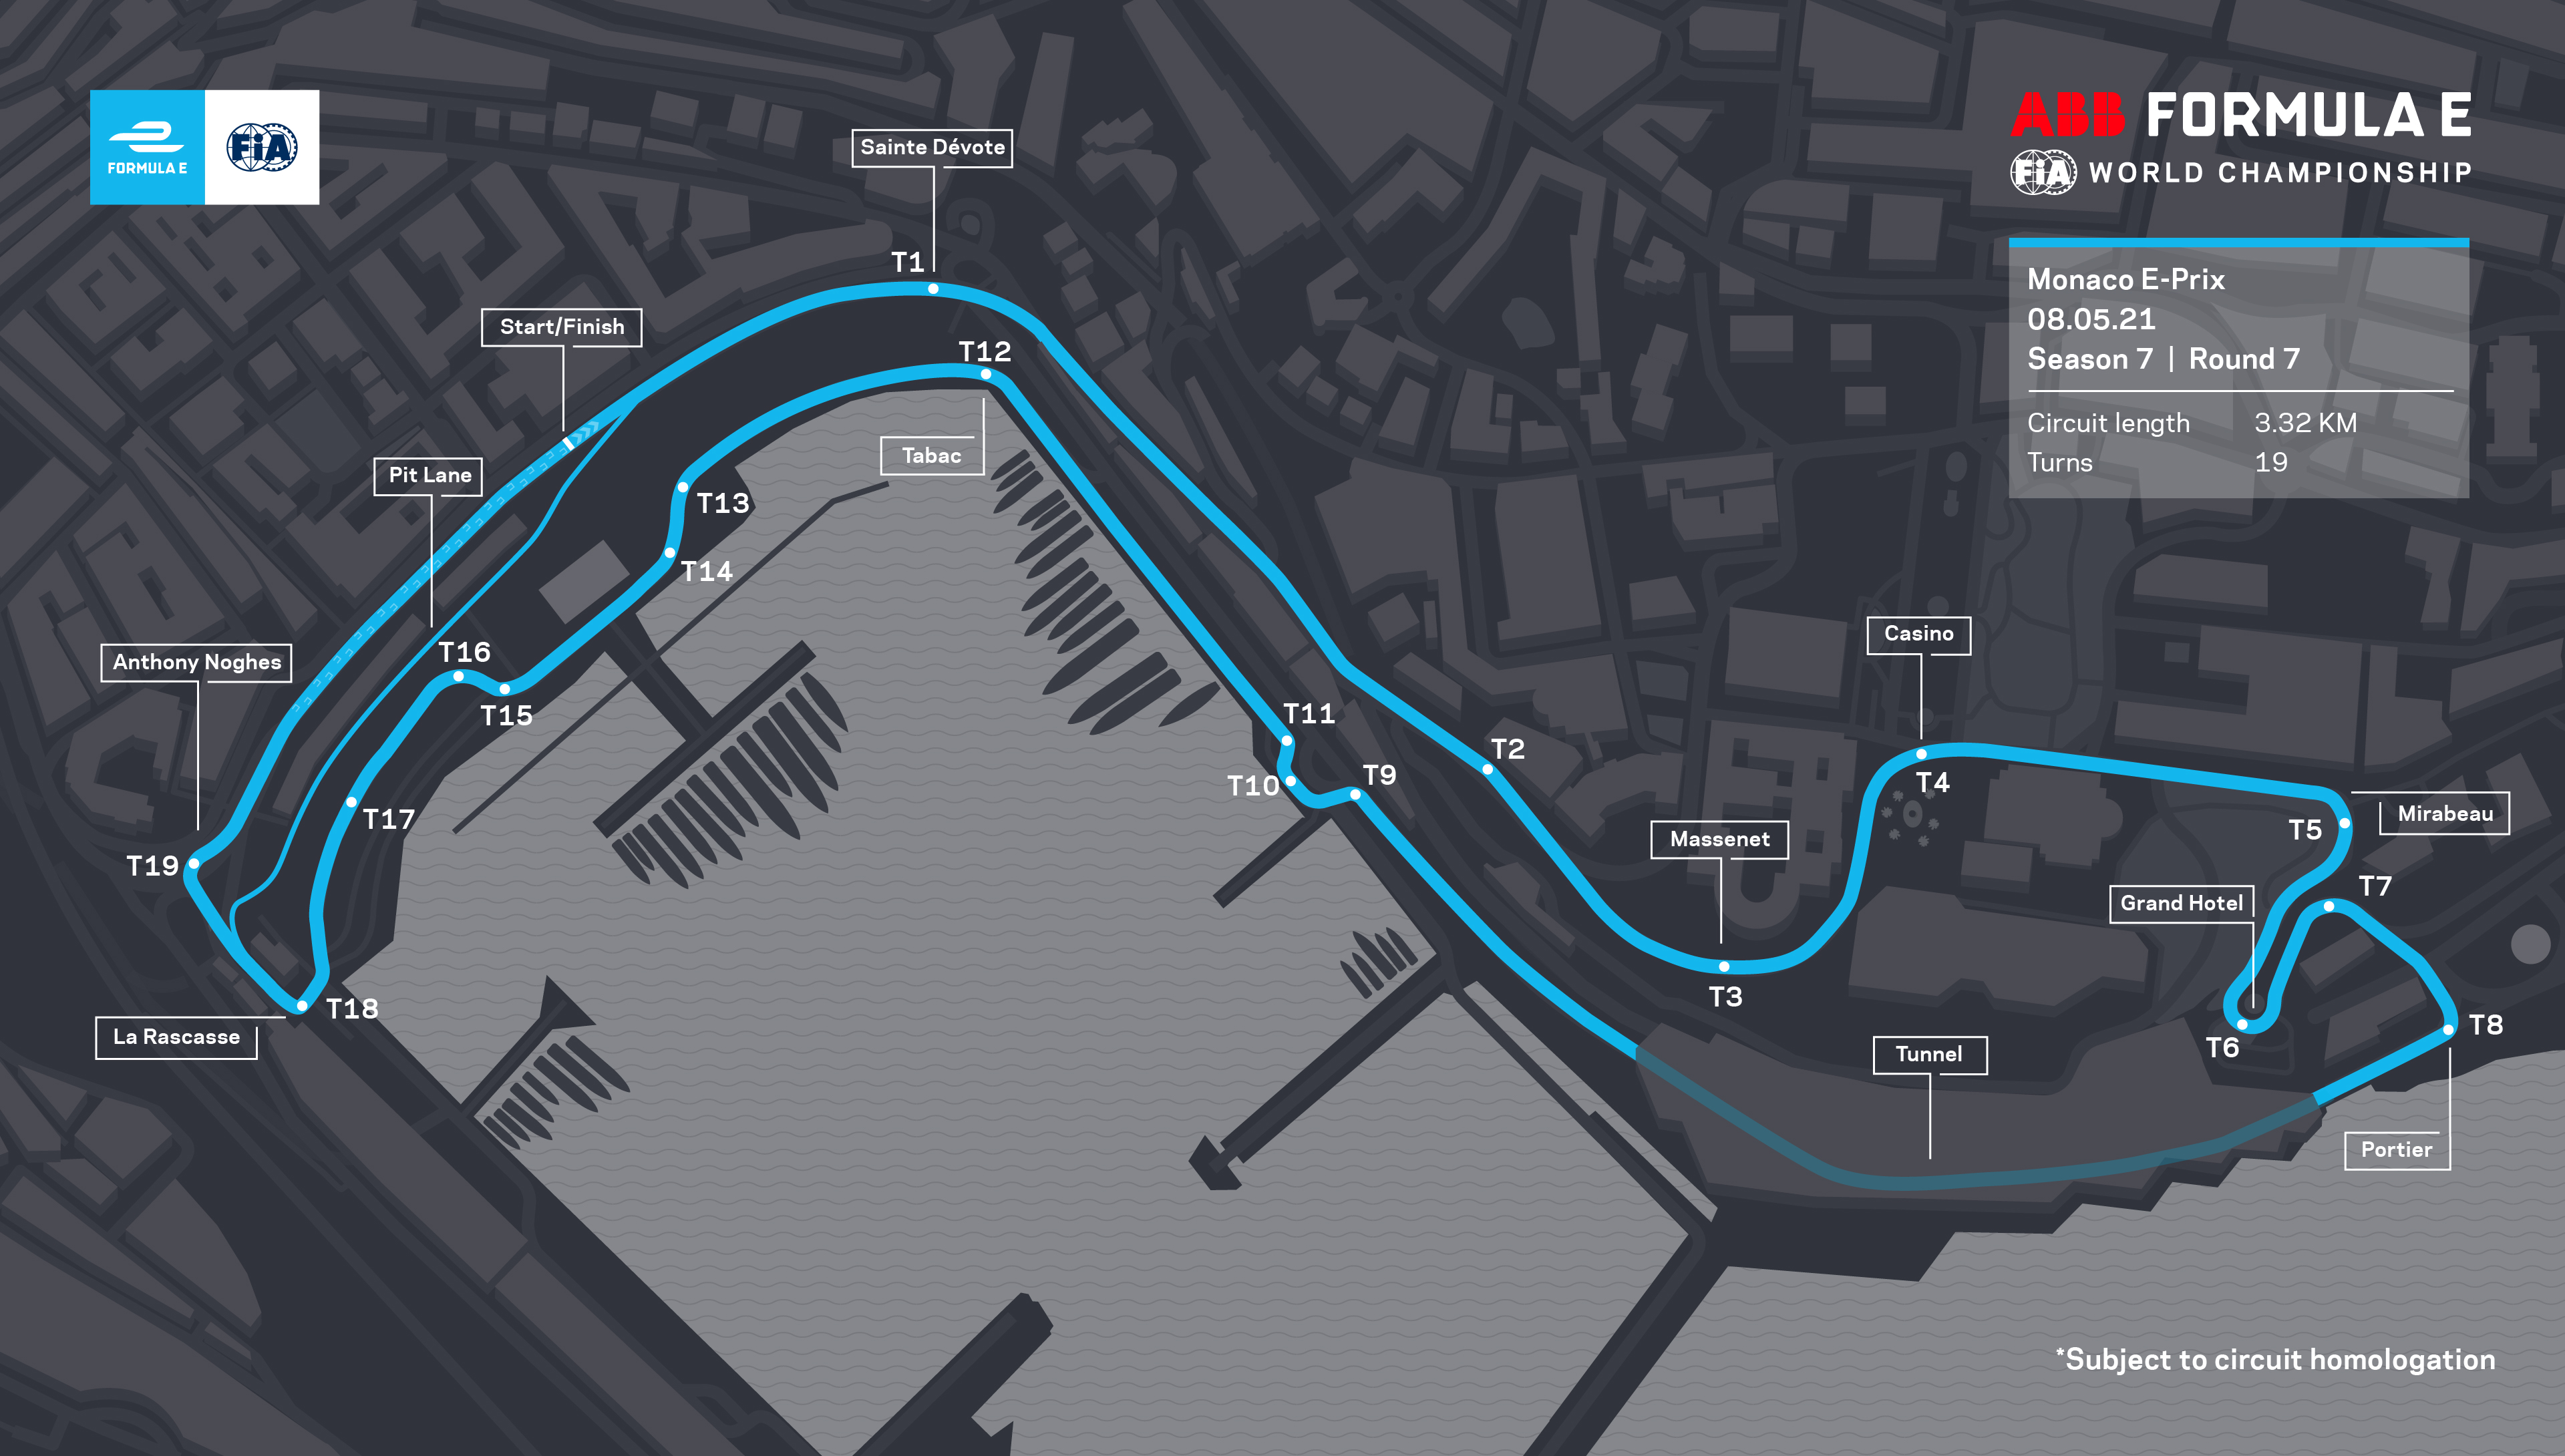 Monaco E-Prix new circuit layout